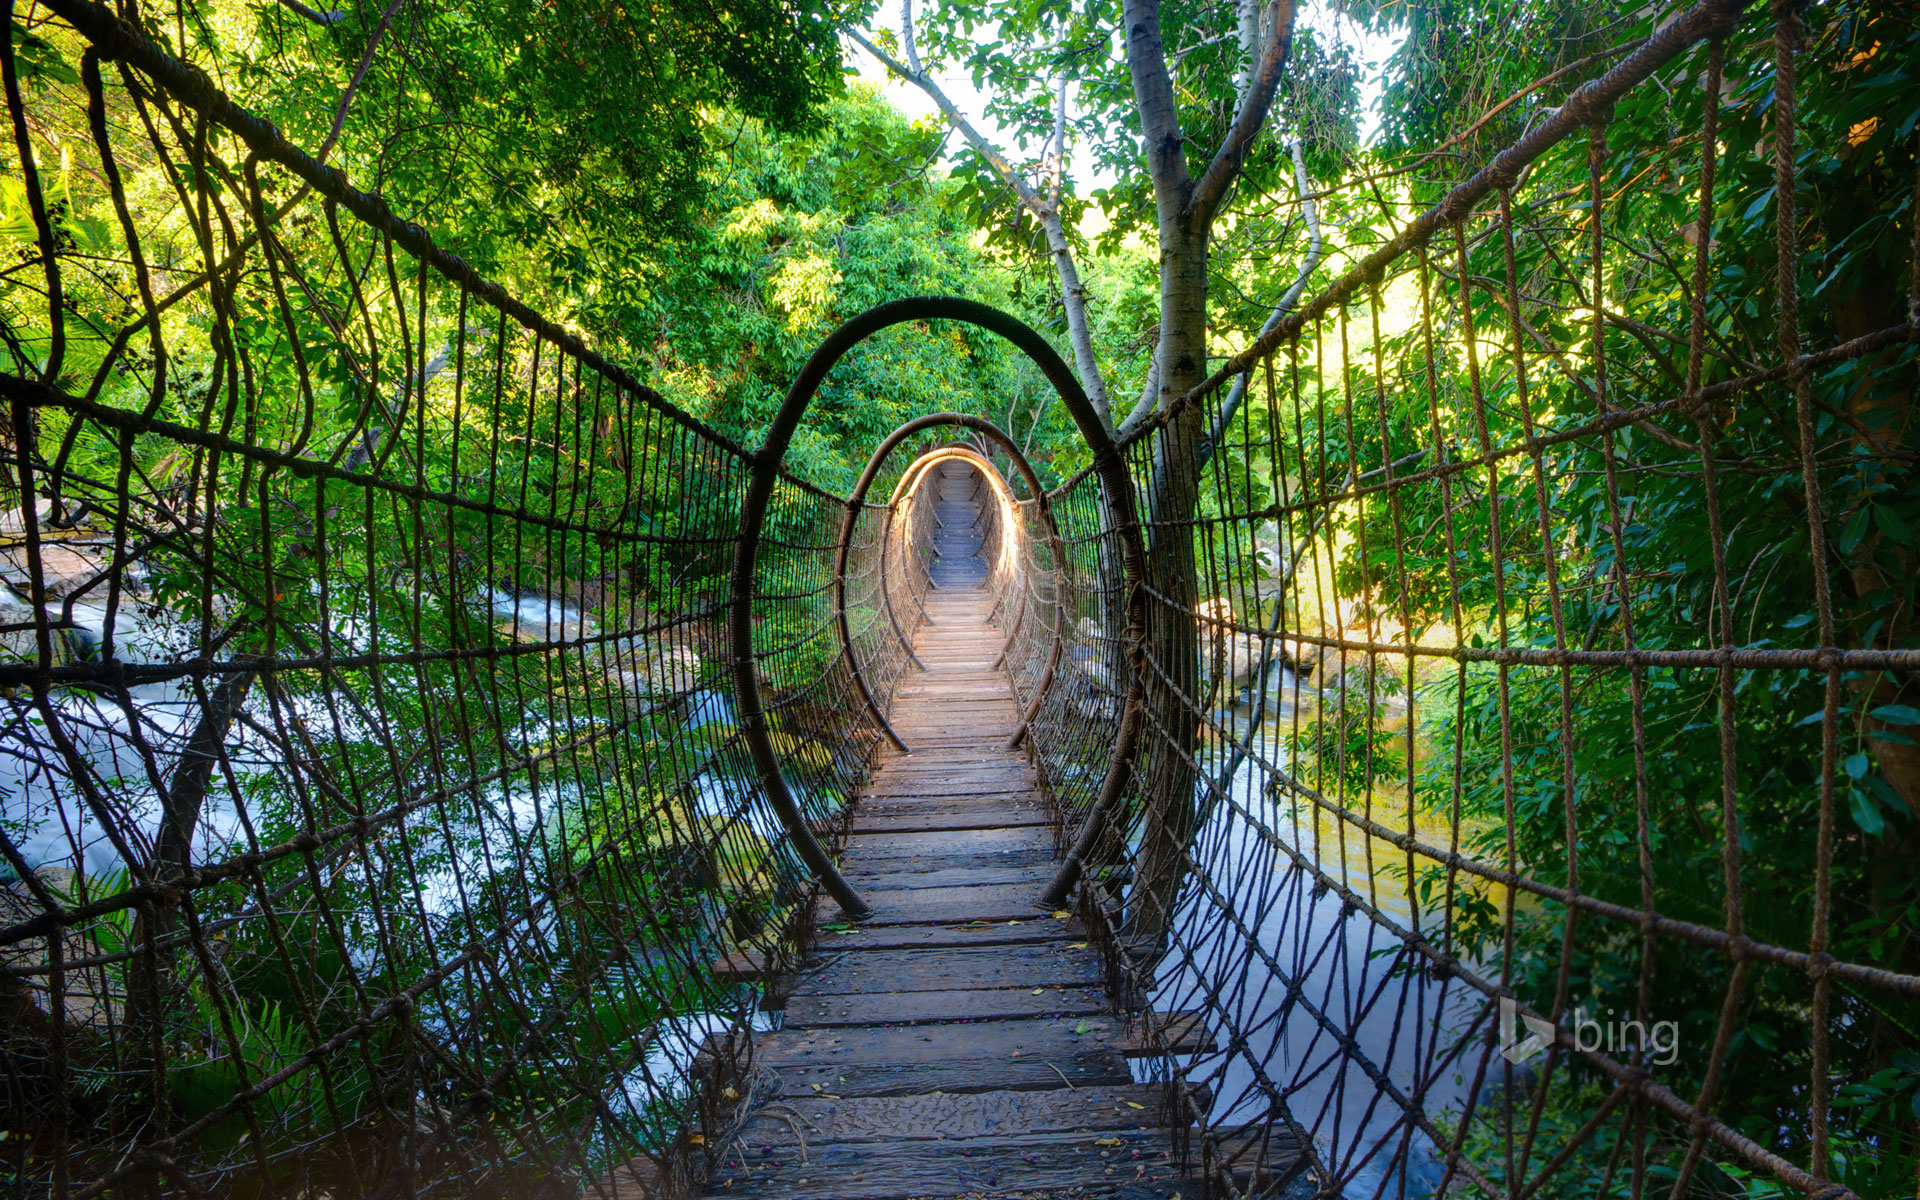 Sway bridge at The Palace of the Lost City, North West Province, South Africa